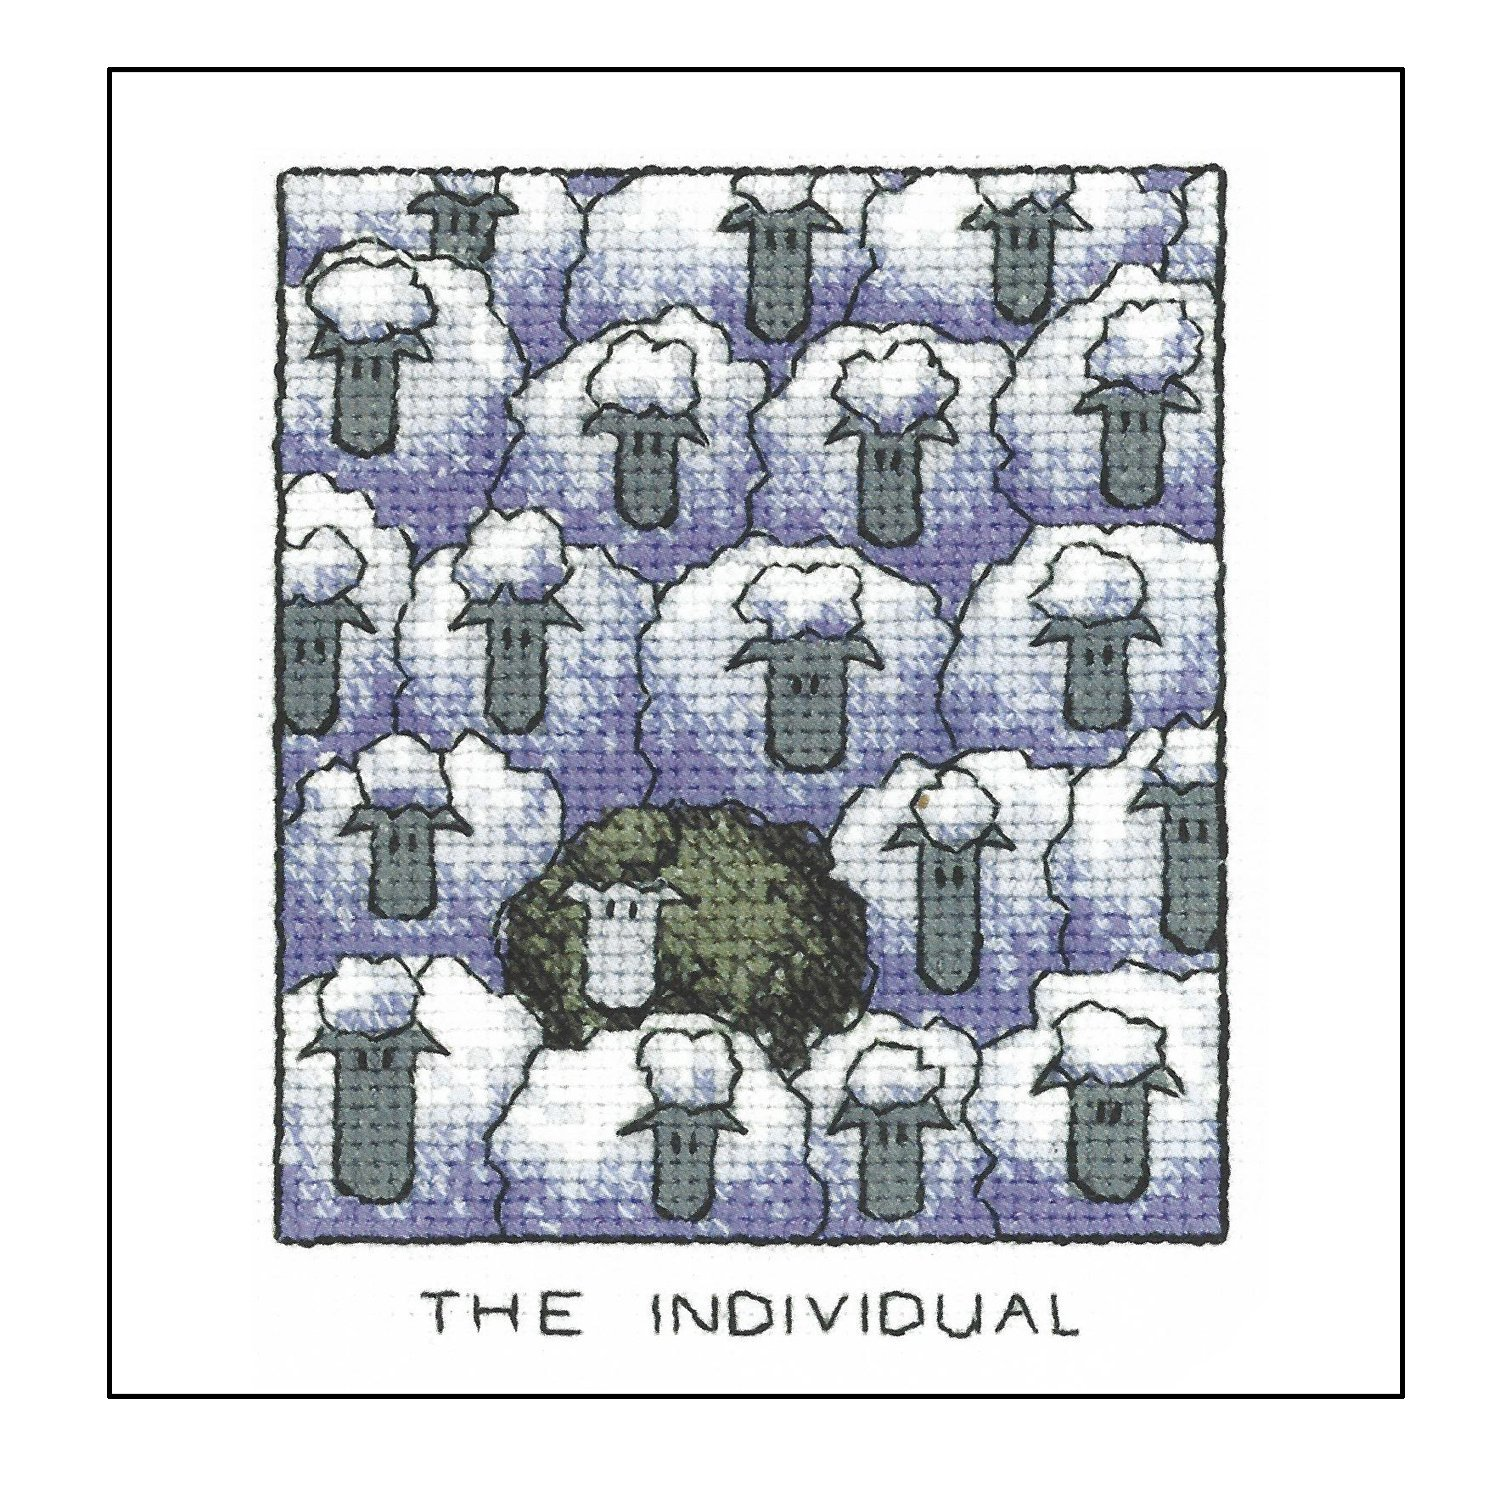 Heritage Crafts Cross Stitch Kit - The Individual, Black Sheep